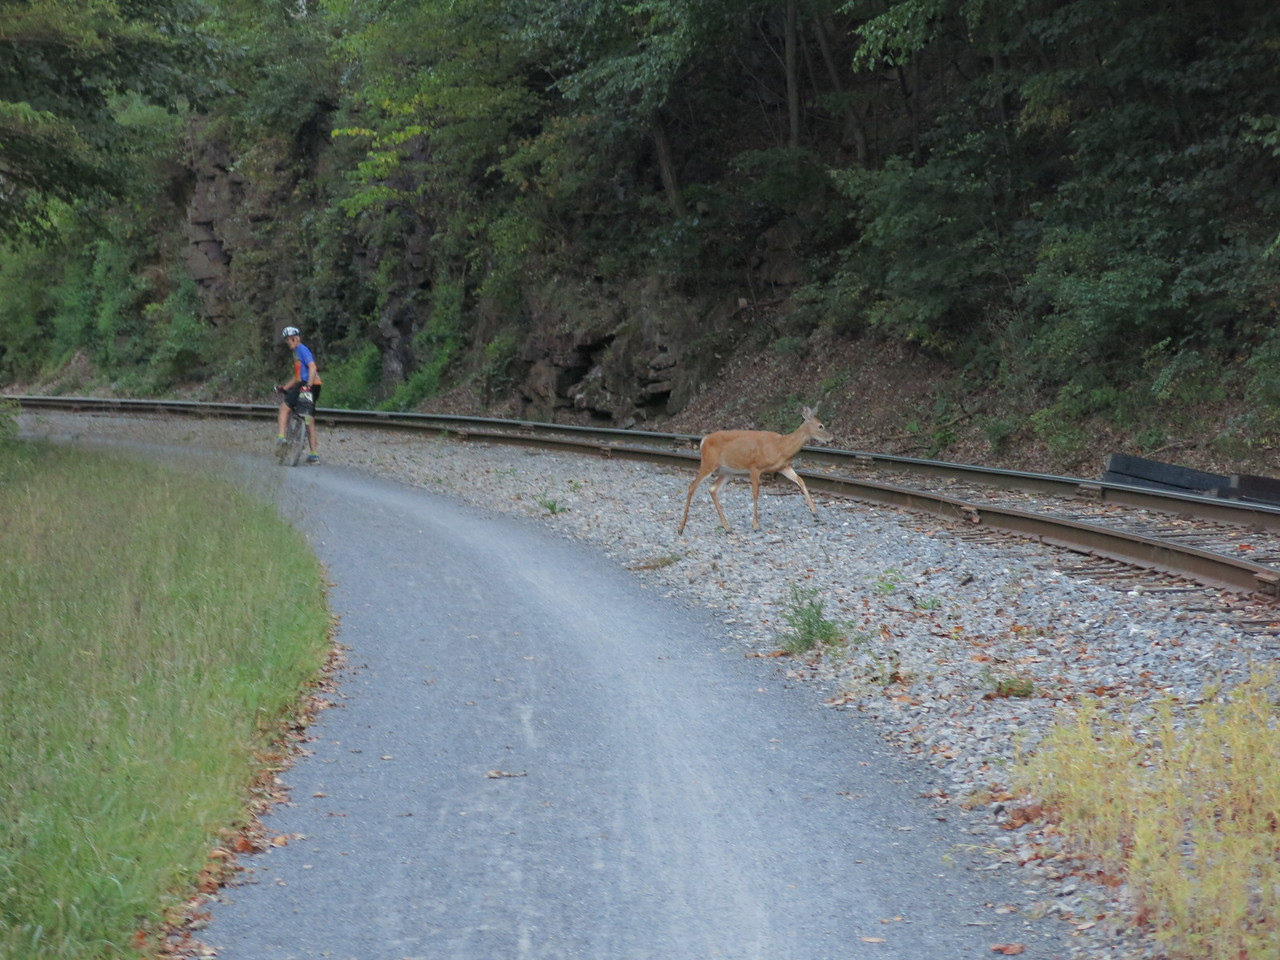 Sharing the trail with a loping deer